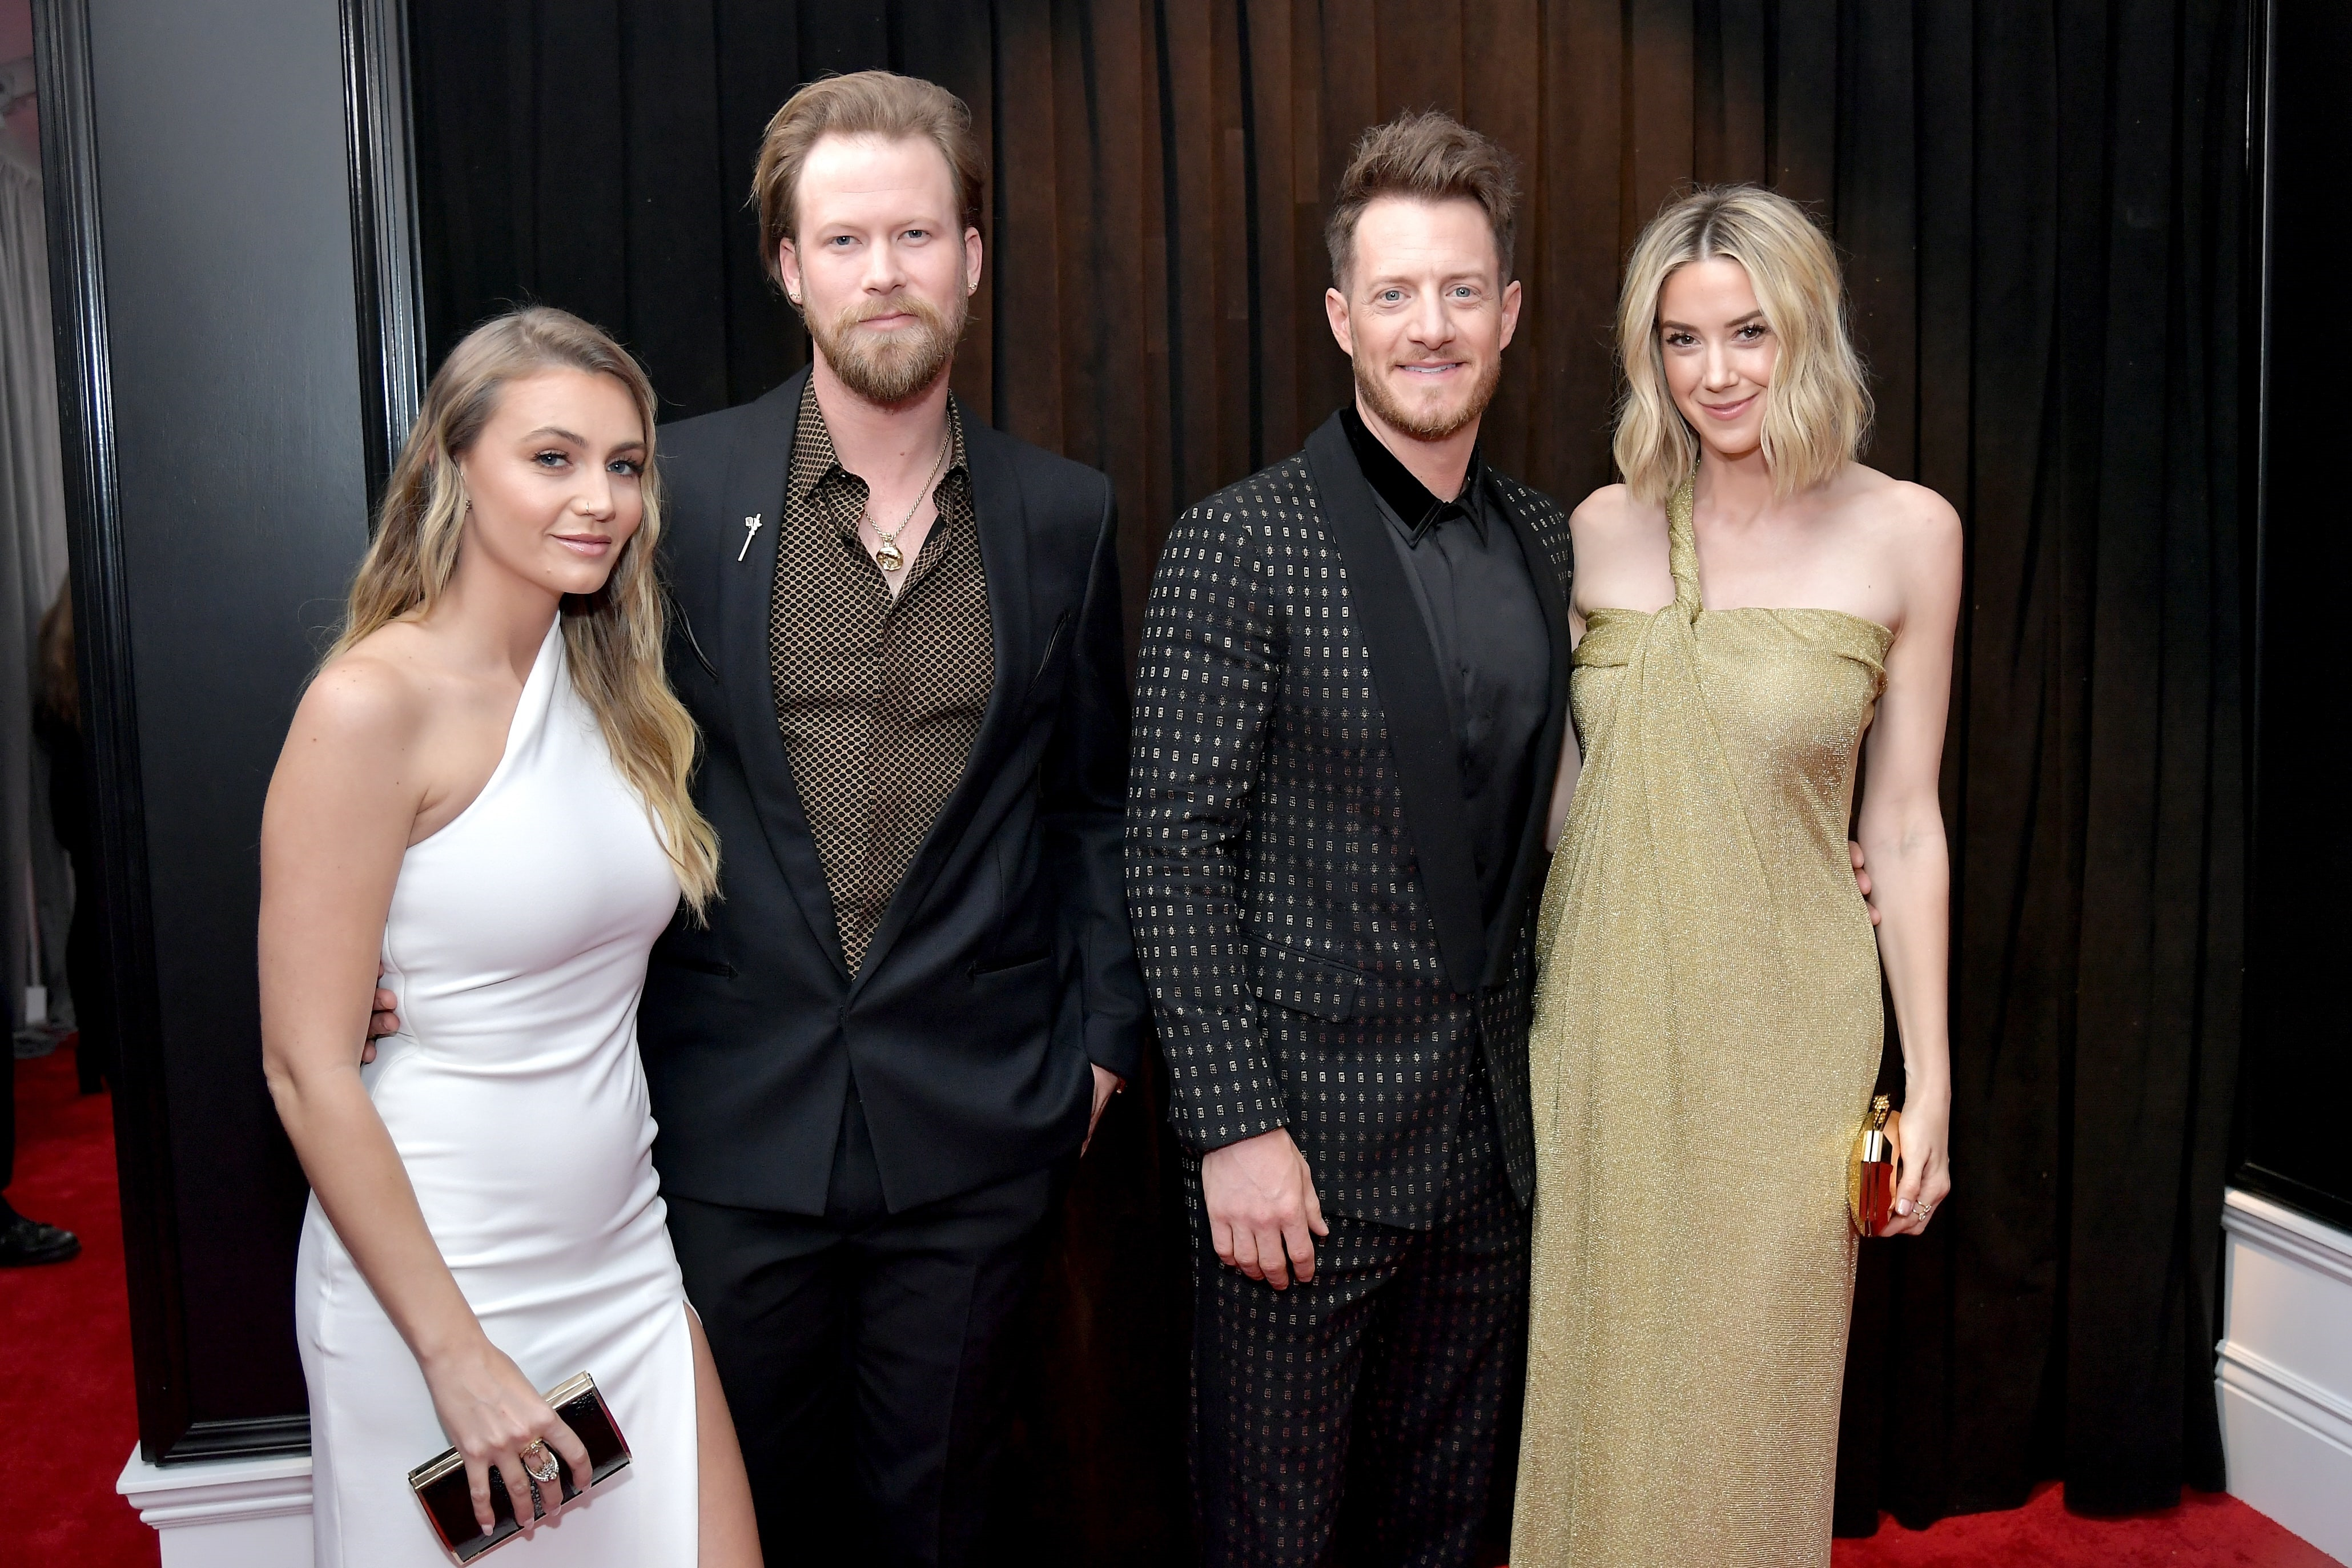 LOS ANGELES, CA - FEBRUARY 10: (L-R) Brittney Marie Cole, Brian Kelley and Tyler Hubbard of 'Florida Georgia Line', and Hayley Stommel attend the 61st Annual GRAMMY Awards at Staples Center on February 10, 2019 in Los Angeles, California. (Photo by Neilson Barnard/Getty Images for The Recording Academy)